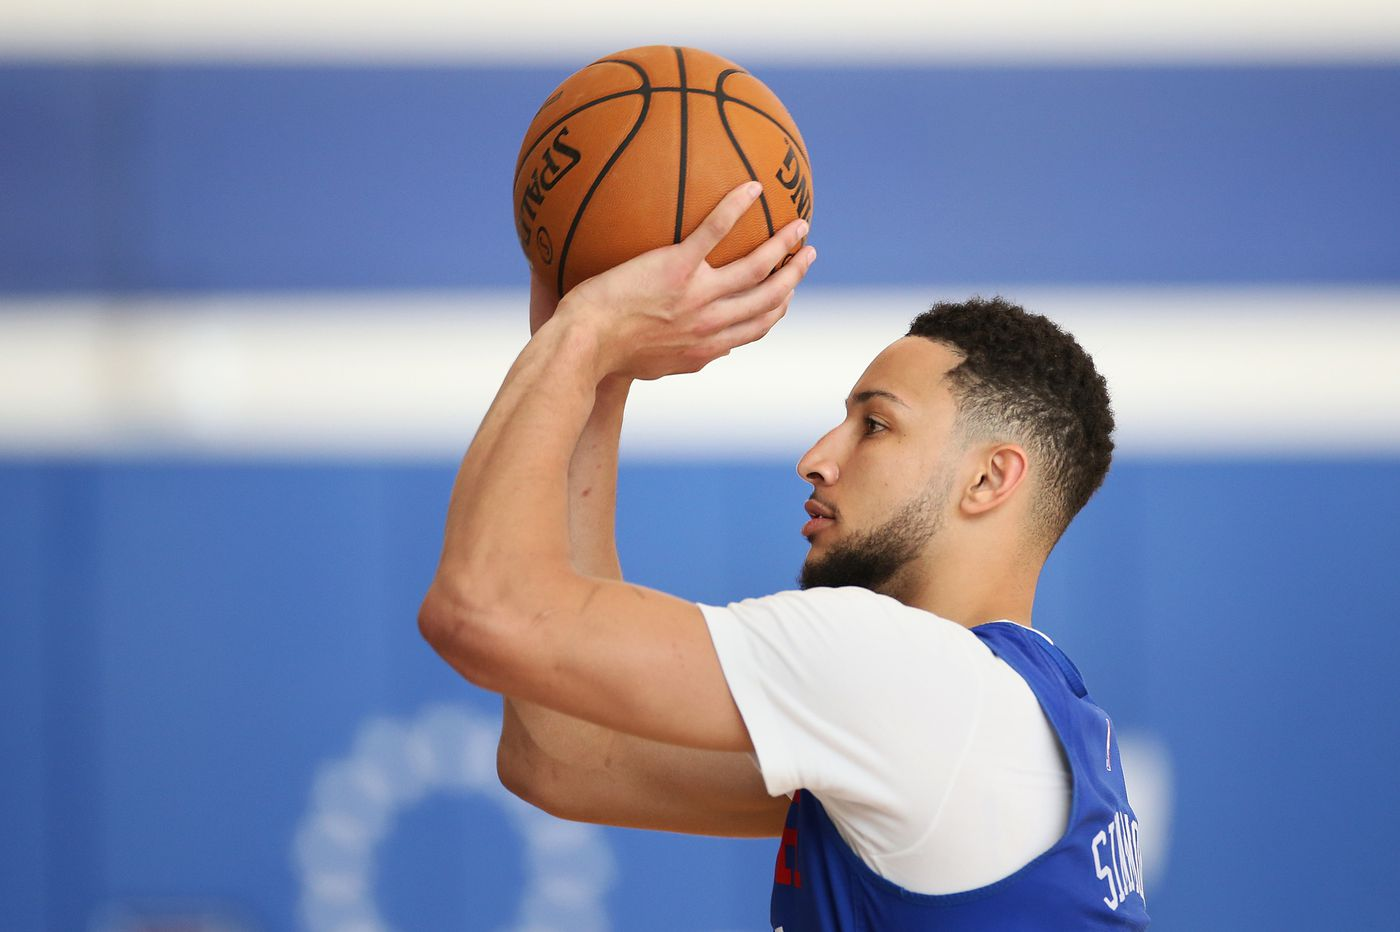 Sixers podcast: Impressions of scrimmages, team's injuries